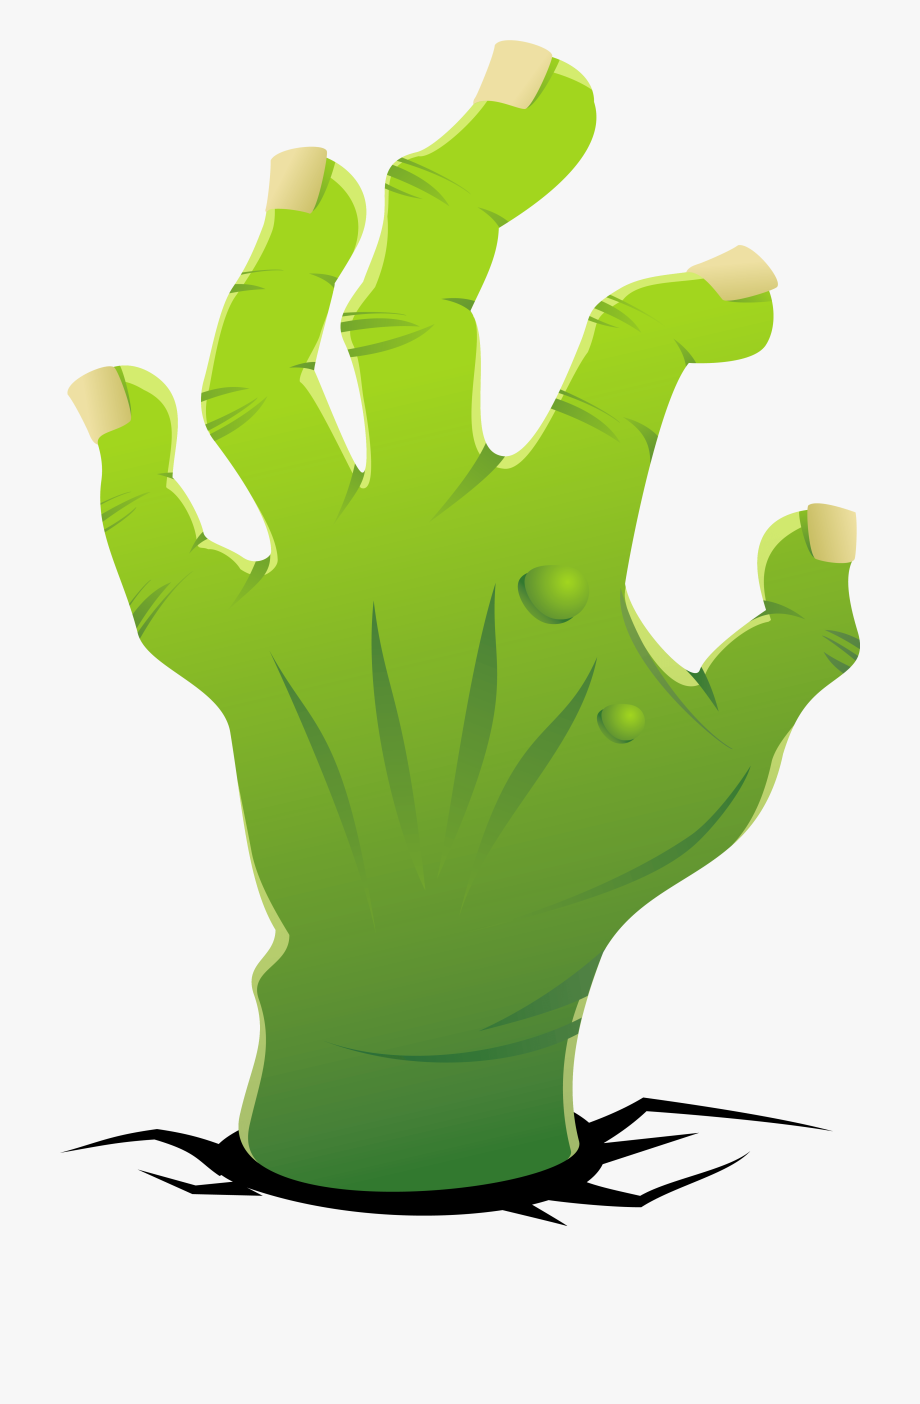 Zombie hand clipart jpg free Zombie Hand Png Clipart Image - Hand , Transparent Cartoon ... jpg free